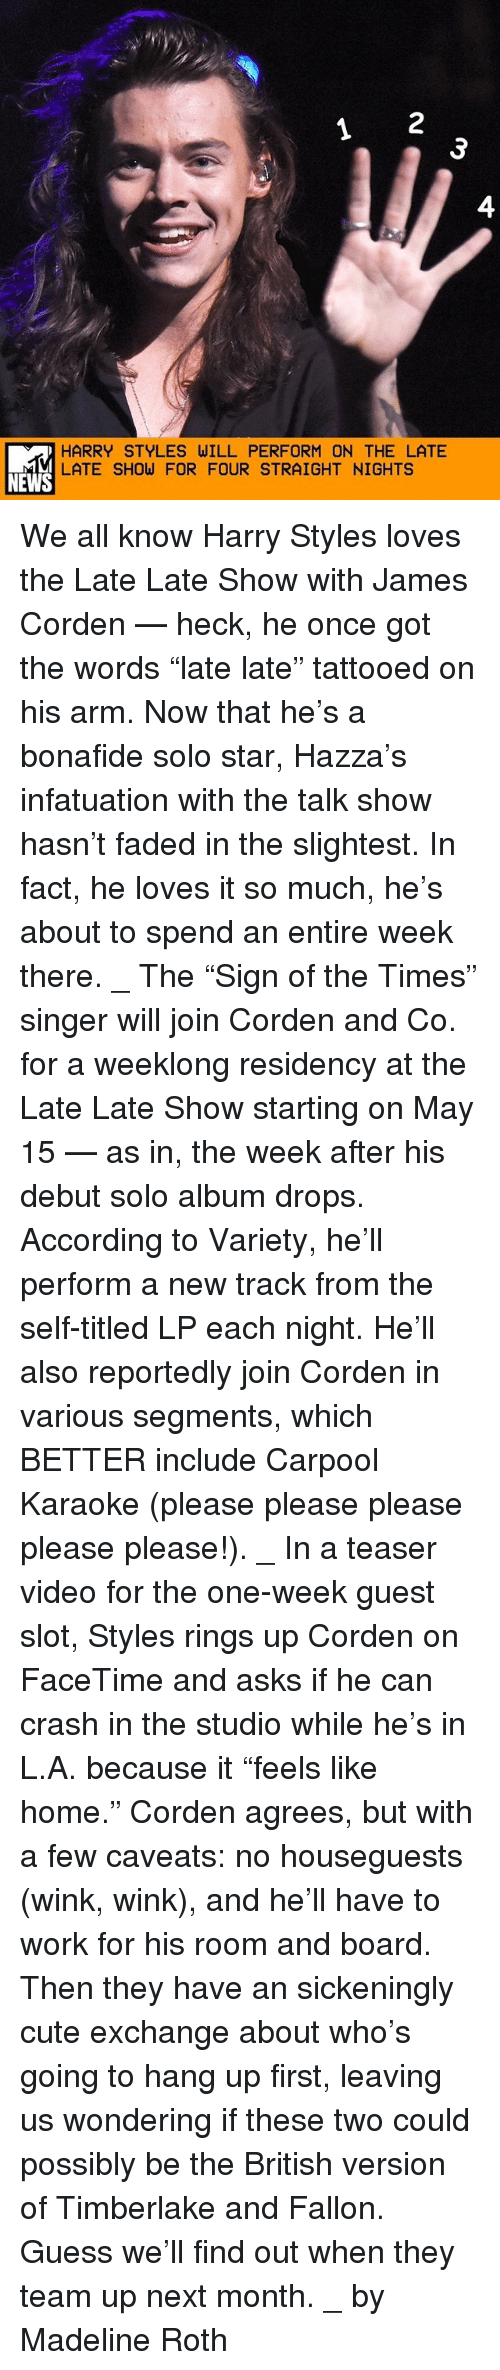 "please please please: HARRY STYLES WILL PERFORM ON THE LATE  LATE SHOW FOR FOUR STRAIGHT NIGHTS  NEWS We all know Harry Styles loves the Late Late Show with James Corden — heck, he once got the words ""late late"" tattooed on his arm. Now that he's a bonafide solo star, Hazza's infatuation with the talk show hasn't faded in the slightest. In fact, he loves it so much, he's about to spend an entire week there. _ The ""Sign of the Times"" singer will join Corden and Co. for a weeklong residency at the Late Late Show starting on May 15 — as in, the week after his debut solo album drops. According to Variety, he'll perform a new track from the self-titled LP each night. He'll also reportedly join Corden in various segments, which BETTER include Carpool Karaoke (please please please please please!). _ In a teaser video for the one-week guest slot, Styles rings up Corden on FaceTime and asks if he can crash in the studio while he's in L.A. because it ""feels like home."" Corden agrees, but with a few caveats: no houseguests (wink, wink), and he'll have to work for his room and board. Then they have an sickeningly cute exchange about who's going to hang up first, leaving us wondering if these two could possibly be the British version of Timberlake and Fallon. Guess we'll find out when they team up next month. _ by Madeline Roth"